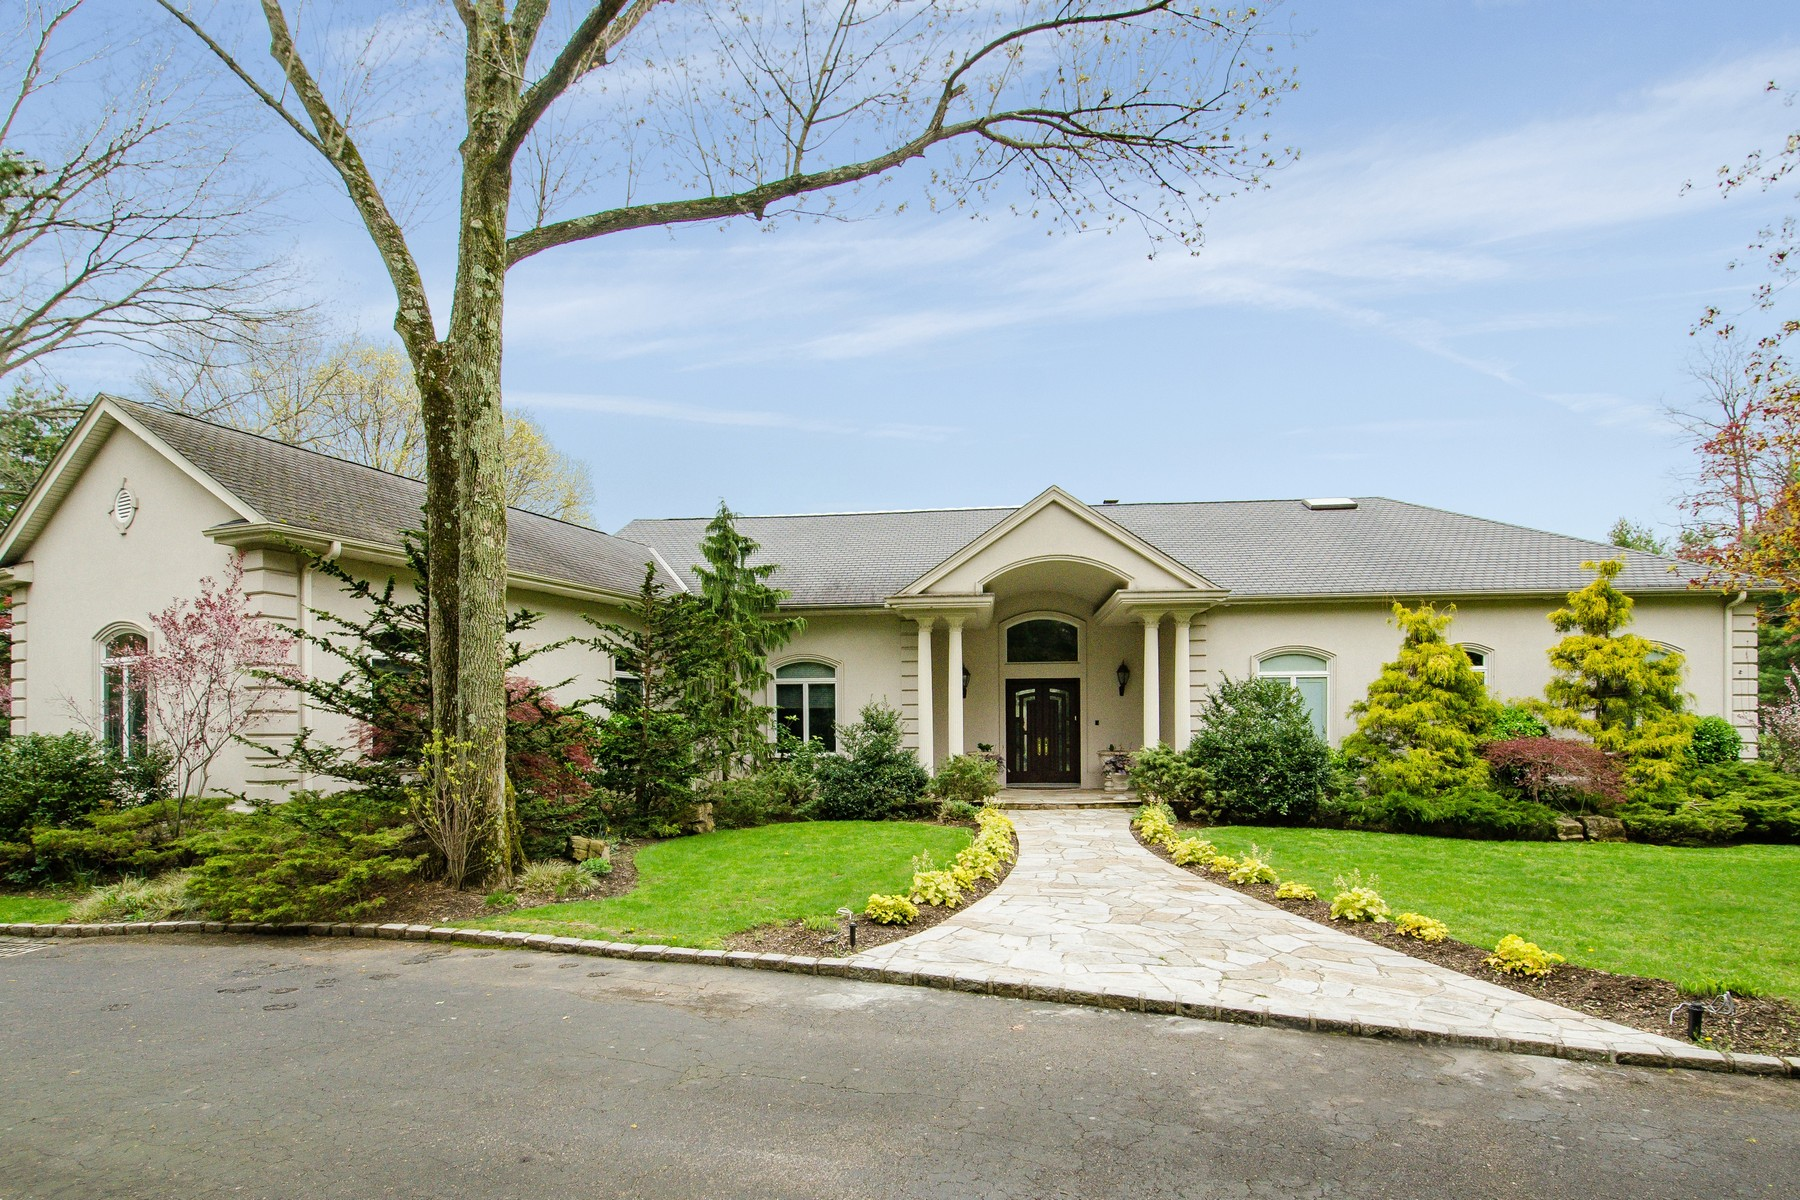 Single Family Home for Sale at Magnificent Custom Ranch on 2 acres 16 Pheasant Run Old Westbury, New York, 11568 United States